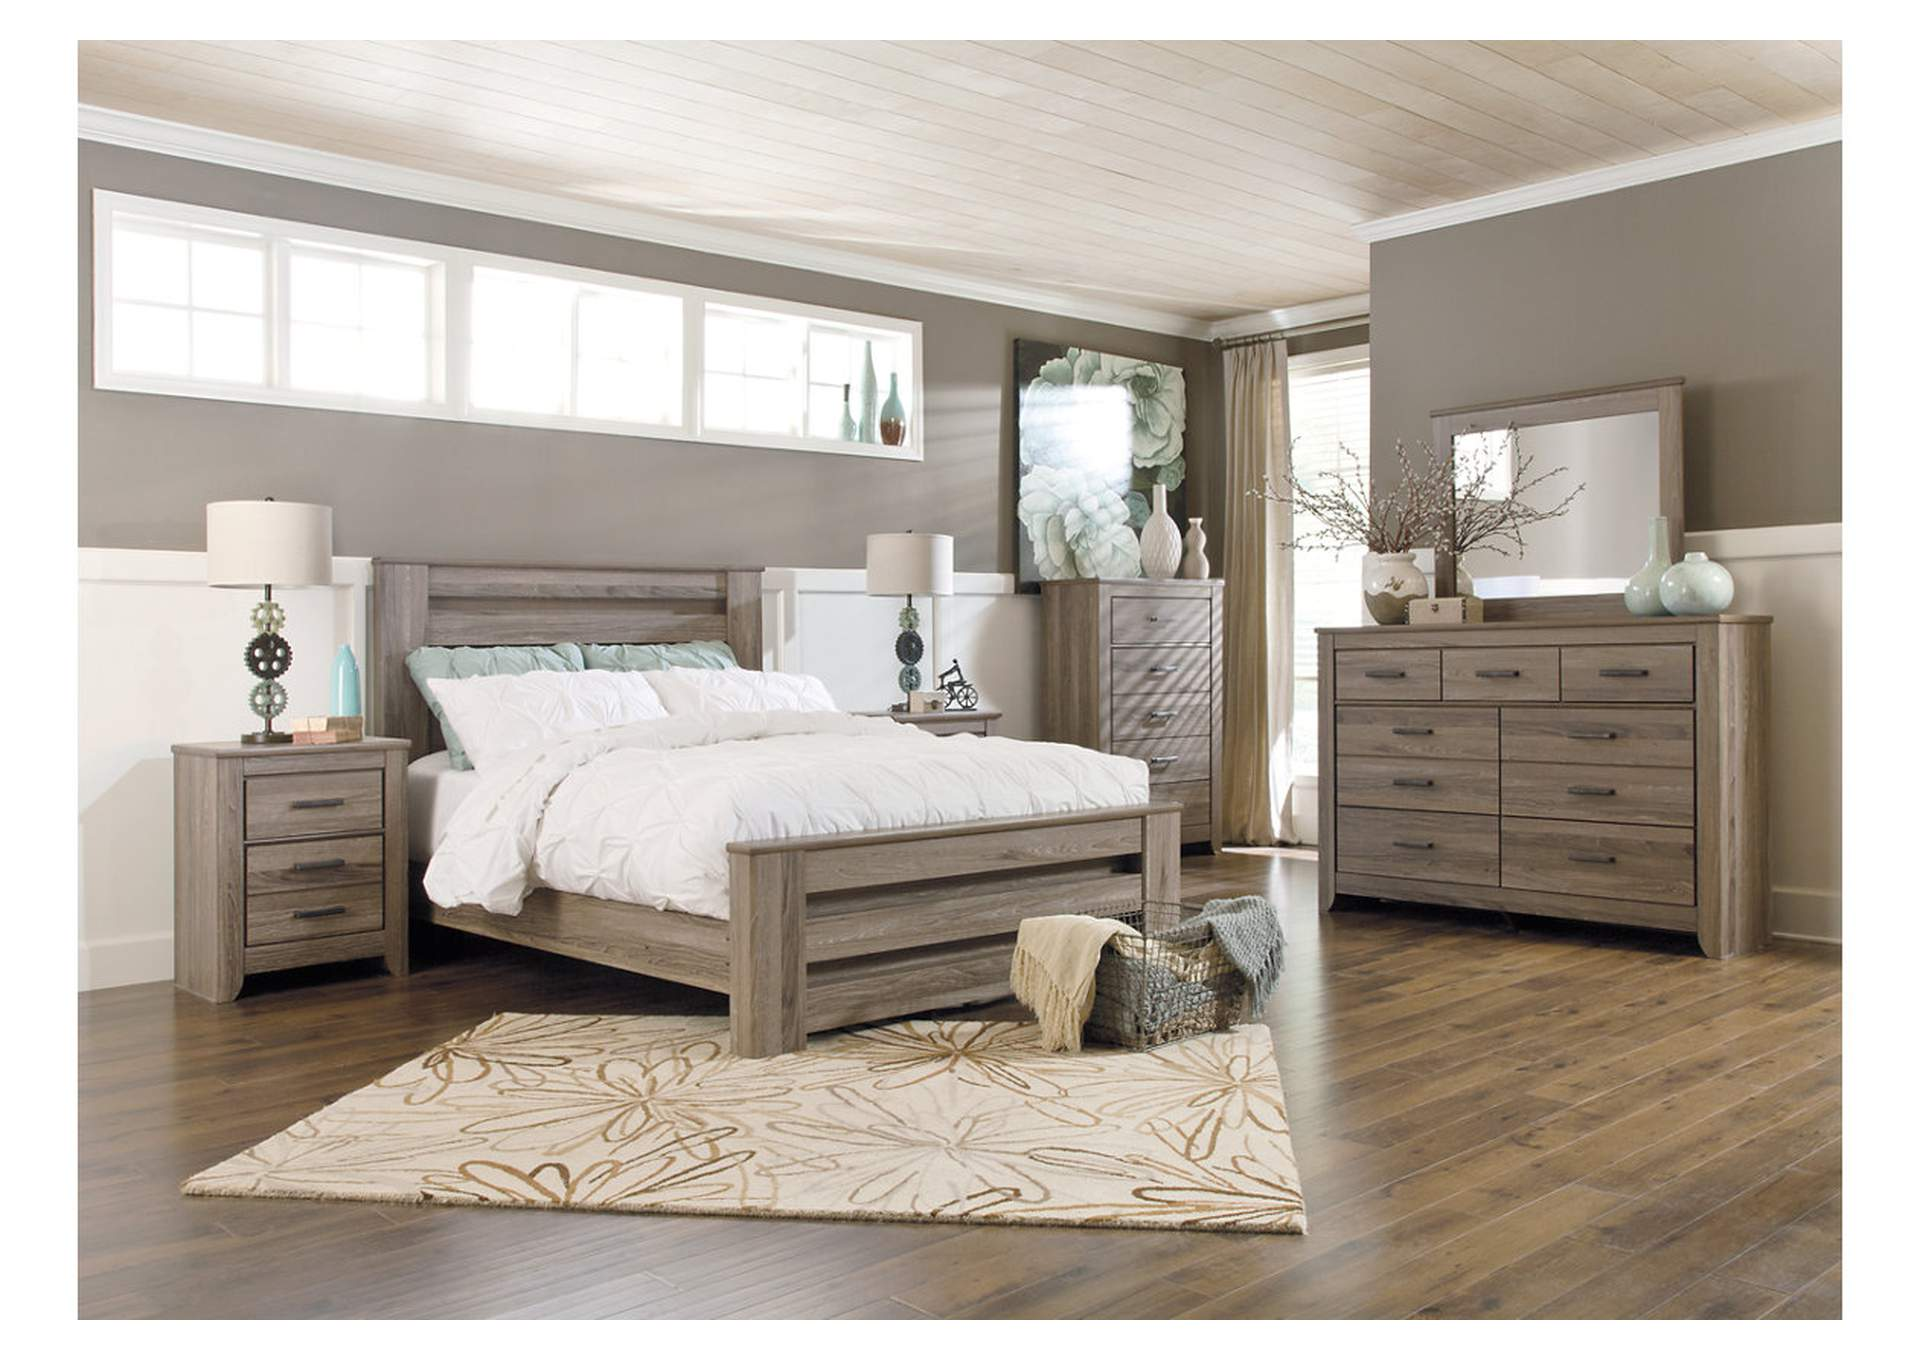 Zelen Queen Poster Bed w/Dresser, Mirror, Drawer Chest & Nightstand,Signature Design By Ashley